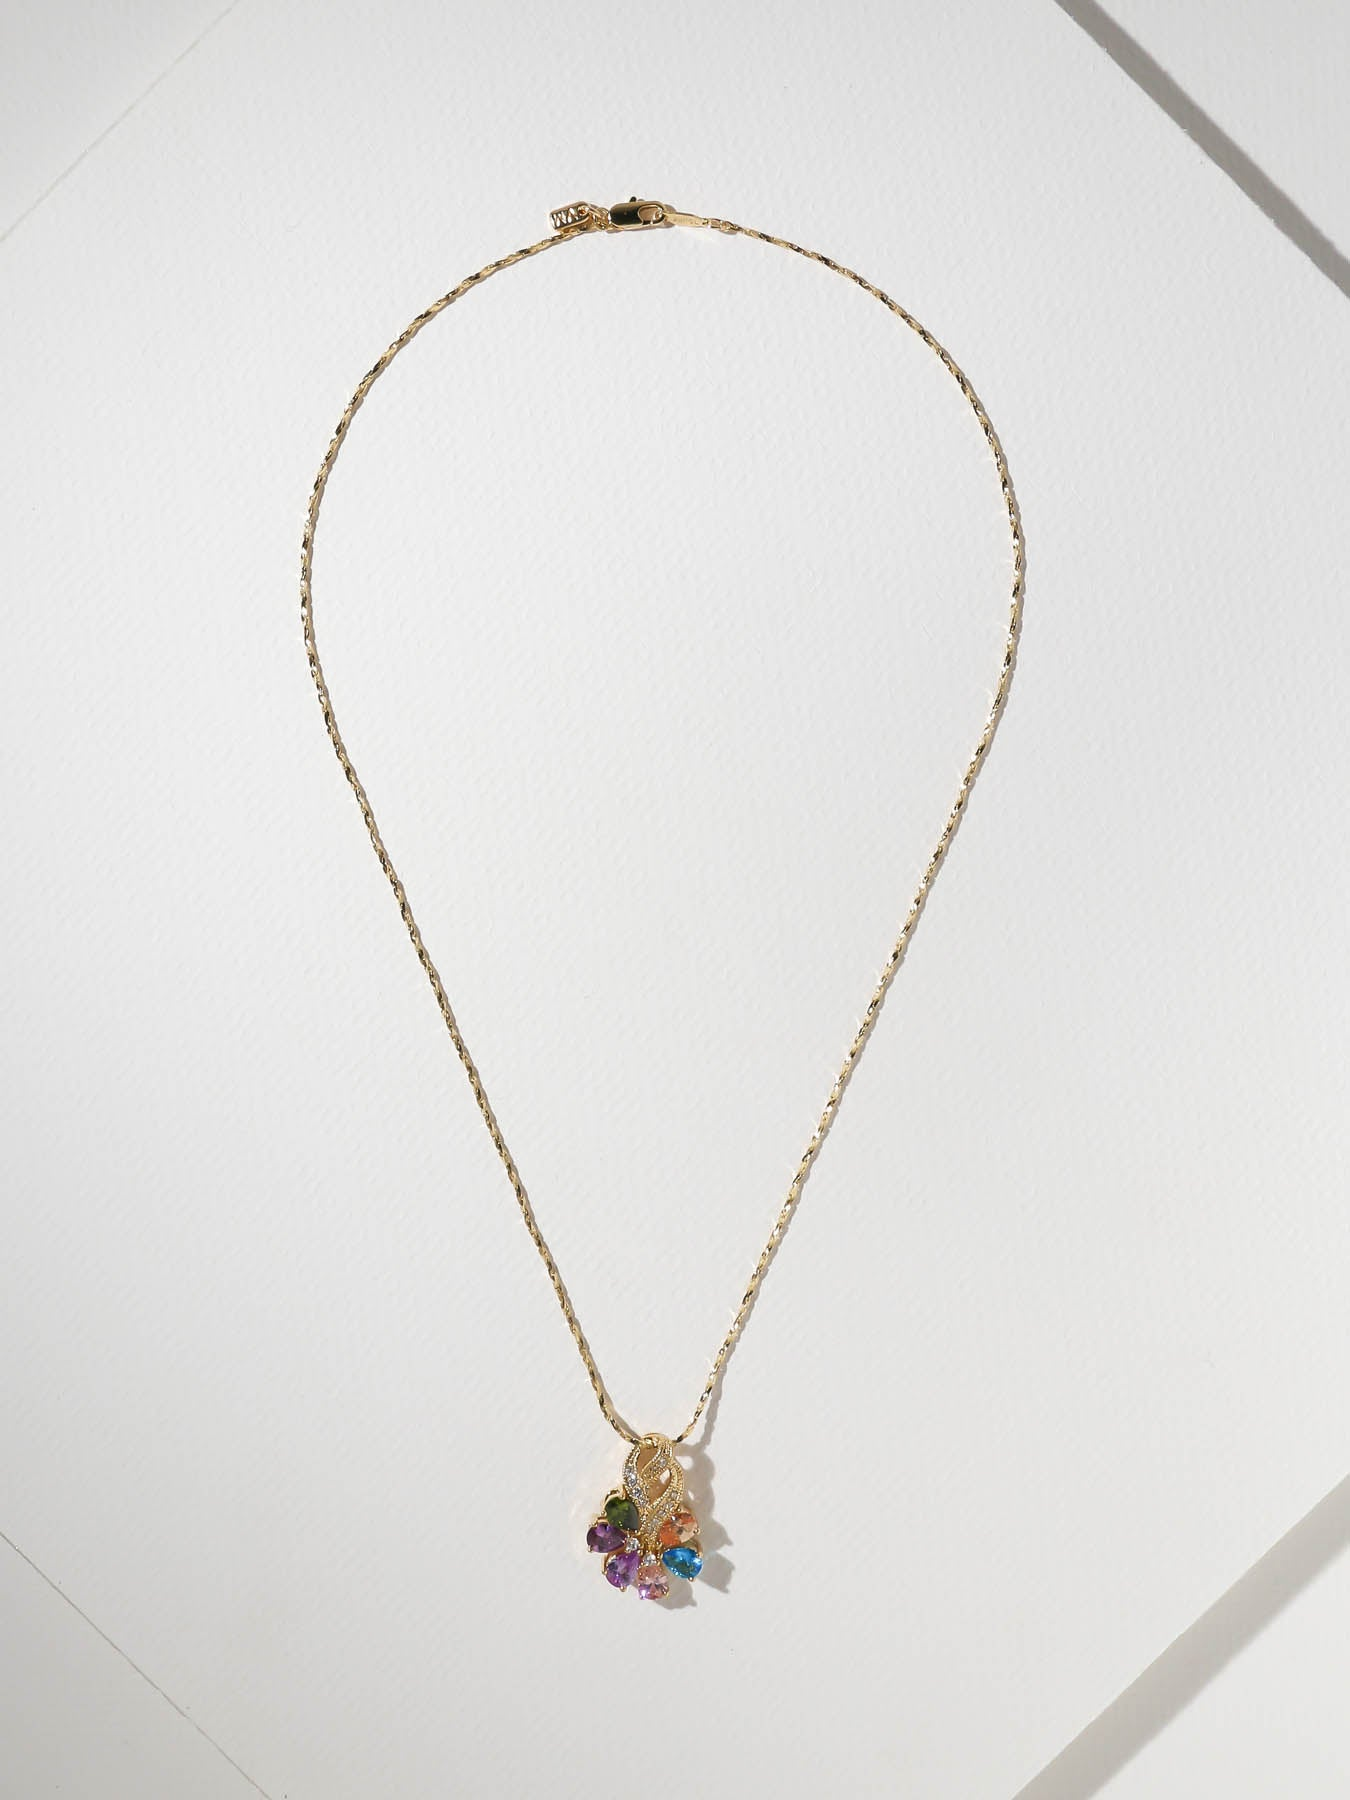 The Myriad Necklace